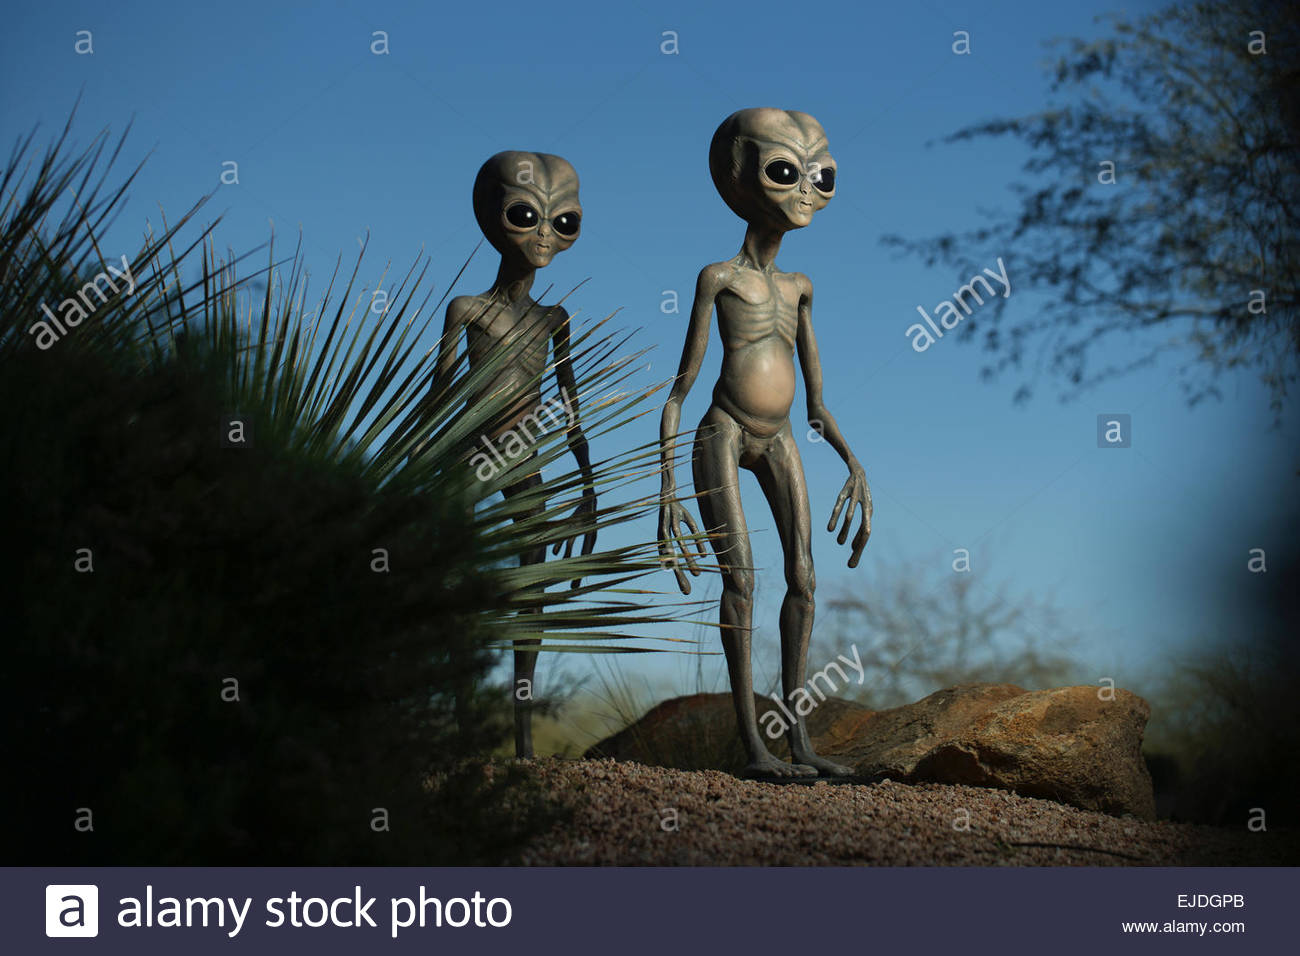 The International UFO Congress Convention and Film Festival held in Scottsdale, Arizona - Stock Image